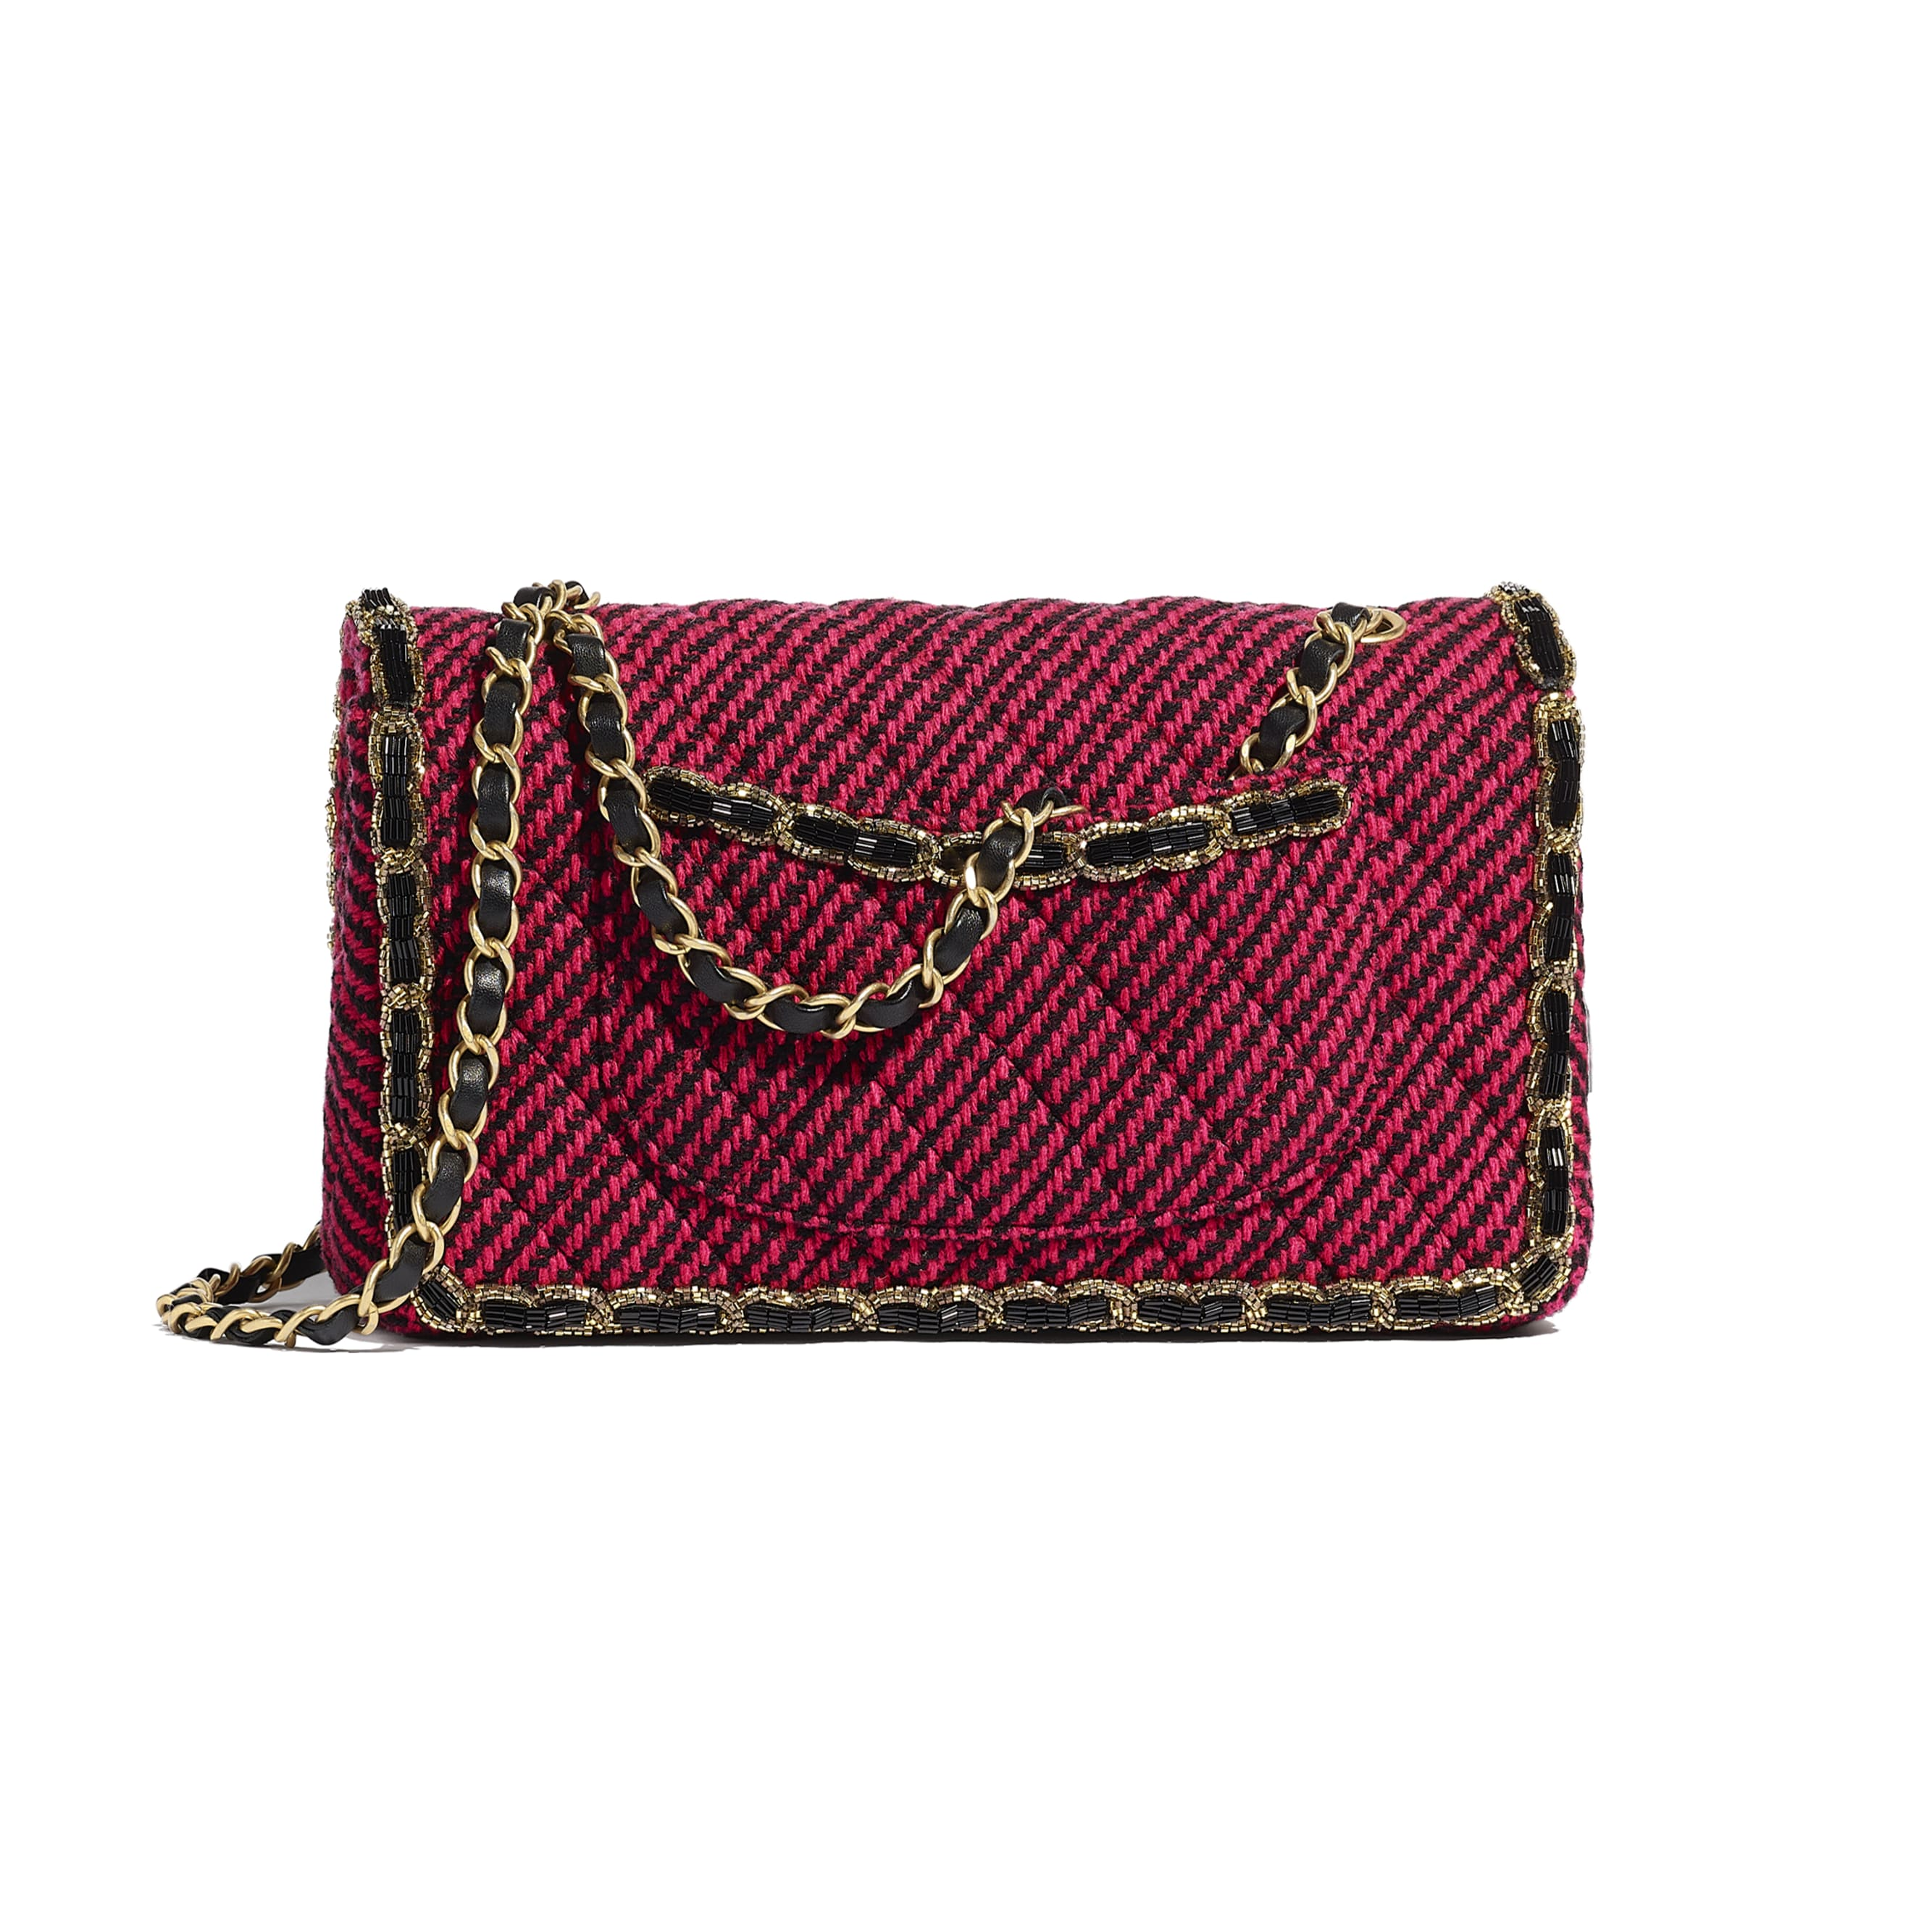 Classic Handbag - Red & Black - Wool Tweed, Glass Pearls & Gold-Tone Metal - CHANEL - Alternative view - see standard sized version